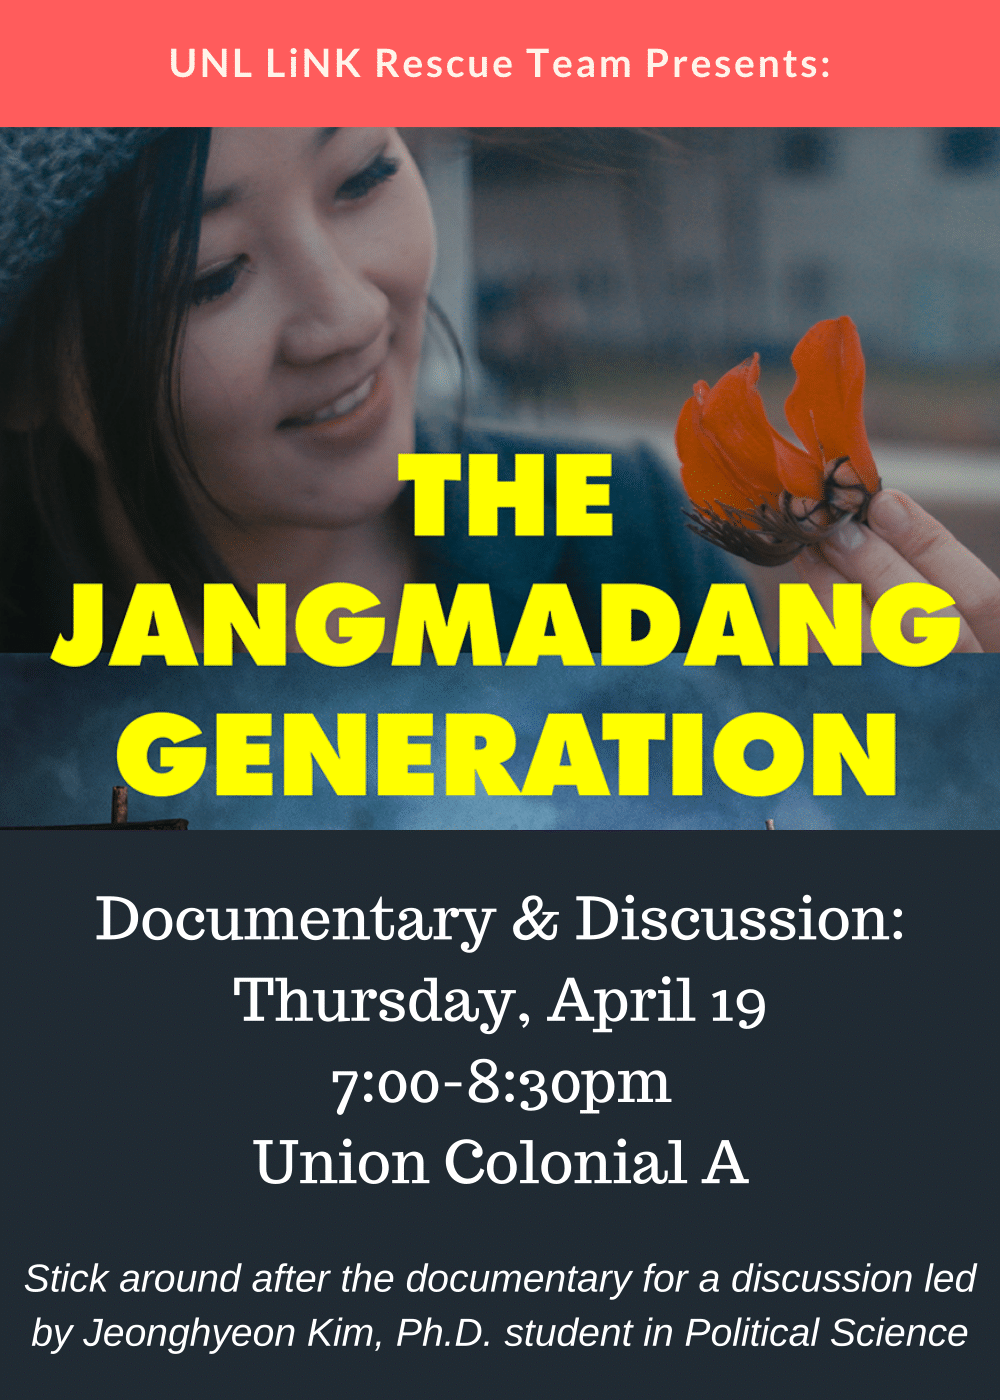 The Jangmadang Generation Documentary and Discussion